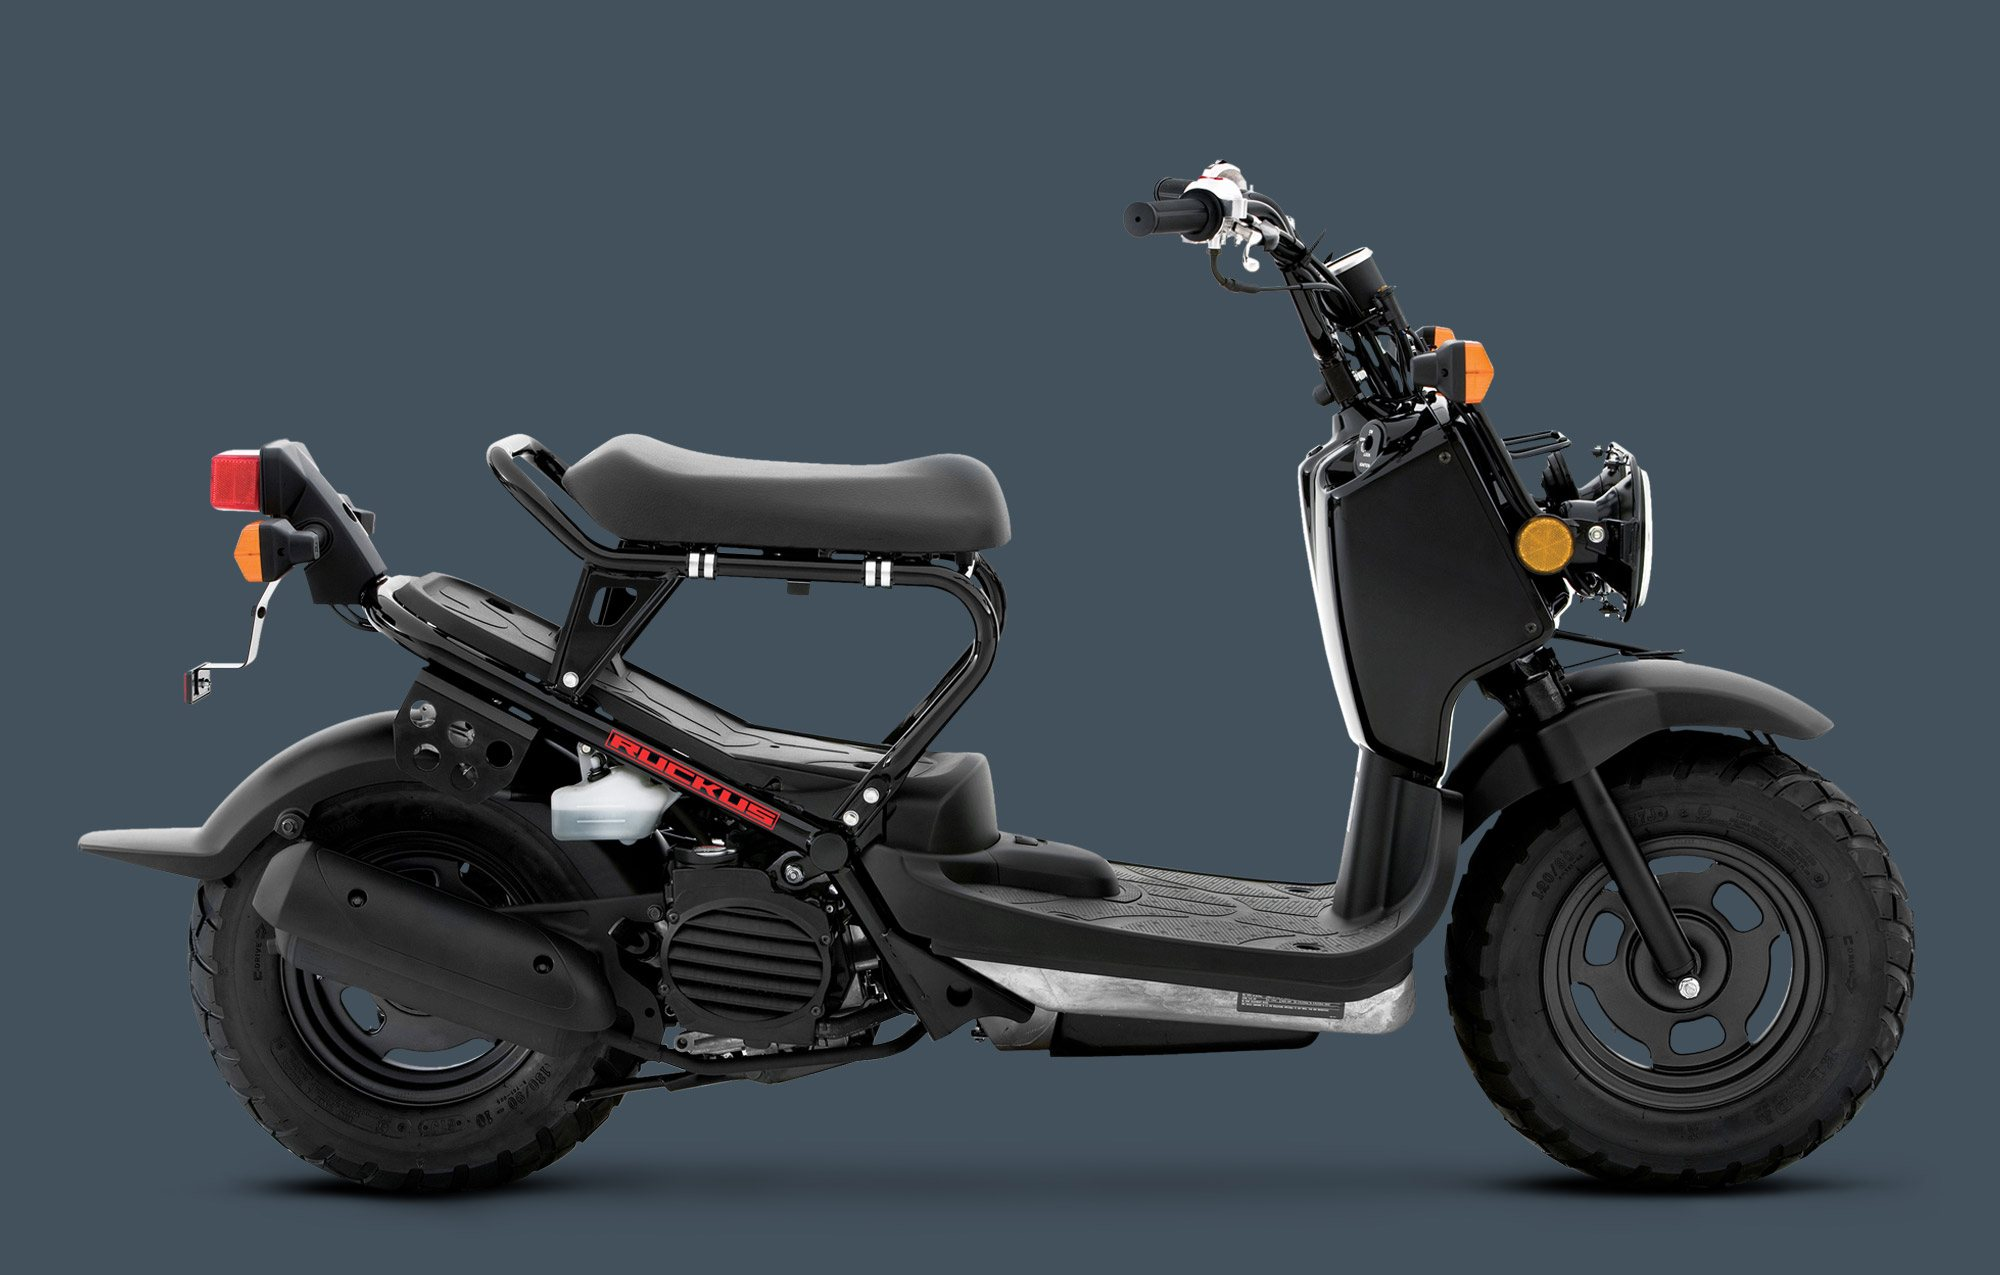 Used Honda Ruckus >> New 2017 Honda Ruckus® Scooters in Las Cruces, NM | Stock Number: